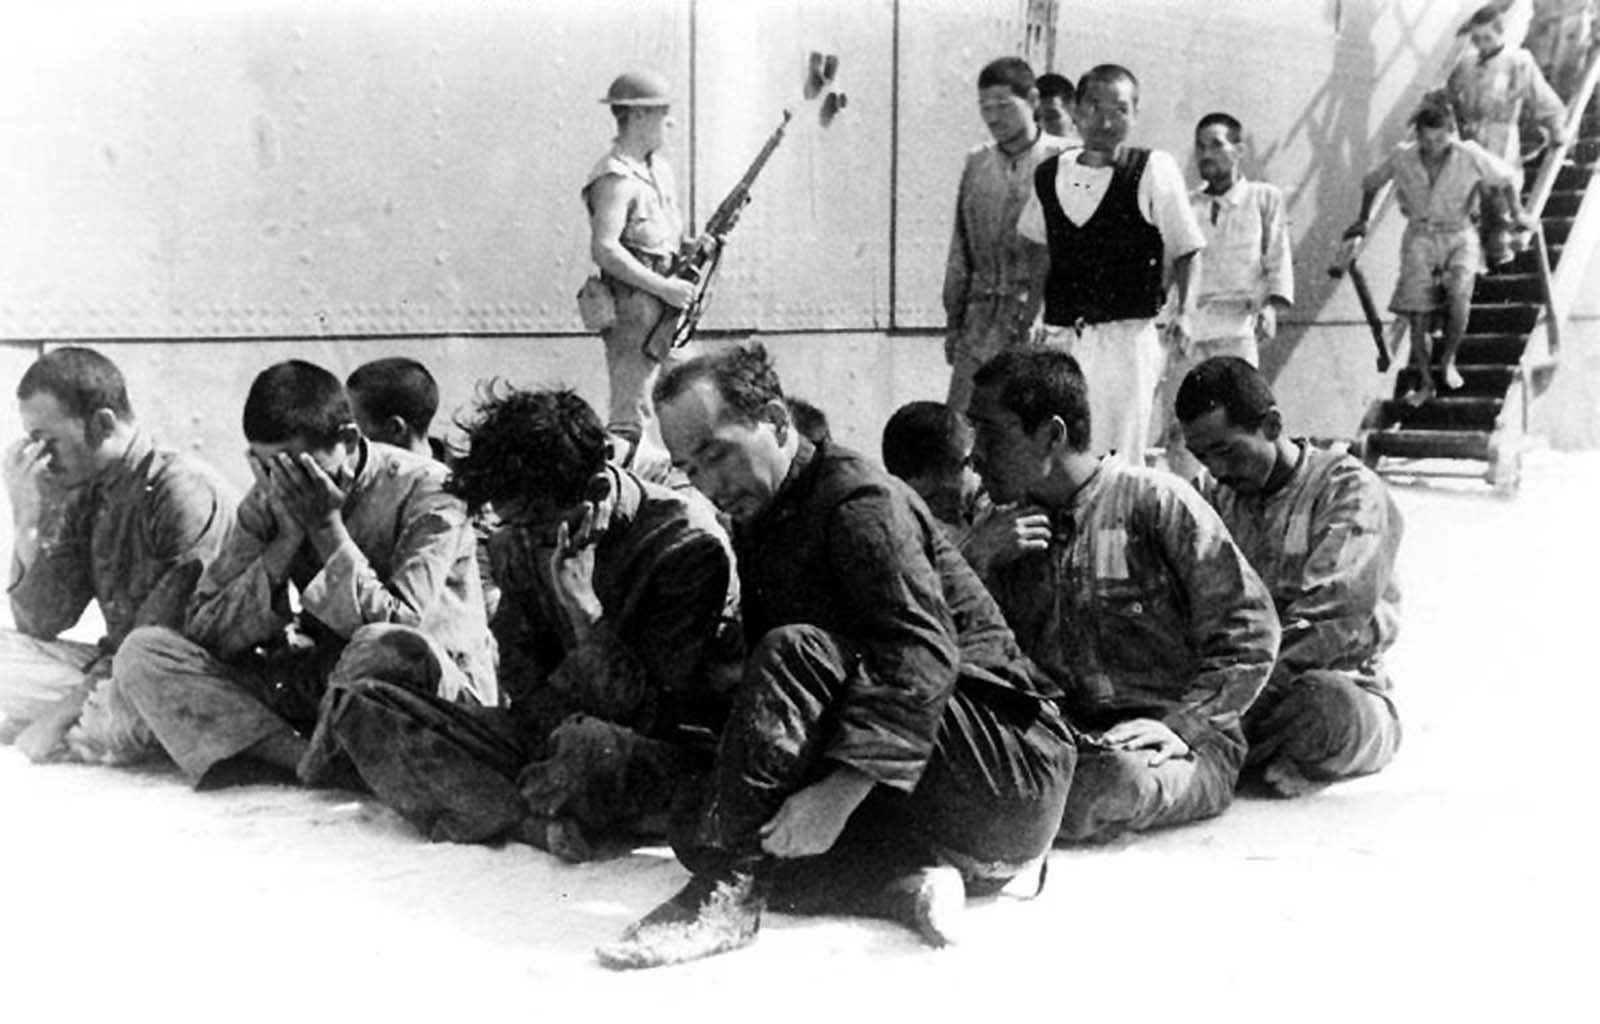 Japanese prisoners of war under guard on Midway, following their rescue from an open lifeboat by USS Ballard, on June 19, 1942. They were survivors of the sunken aircraft carrier Hiryu. After being held for a few days on Midway, they were sent on to Pearl Harbor on June 23, aboard USS Sirius.